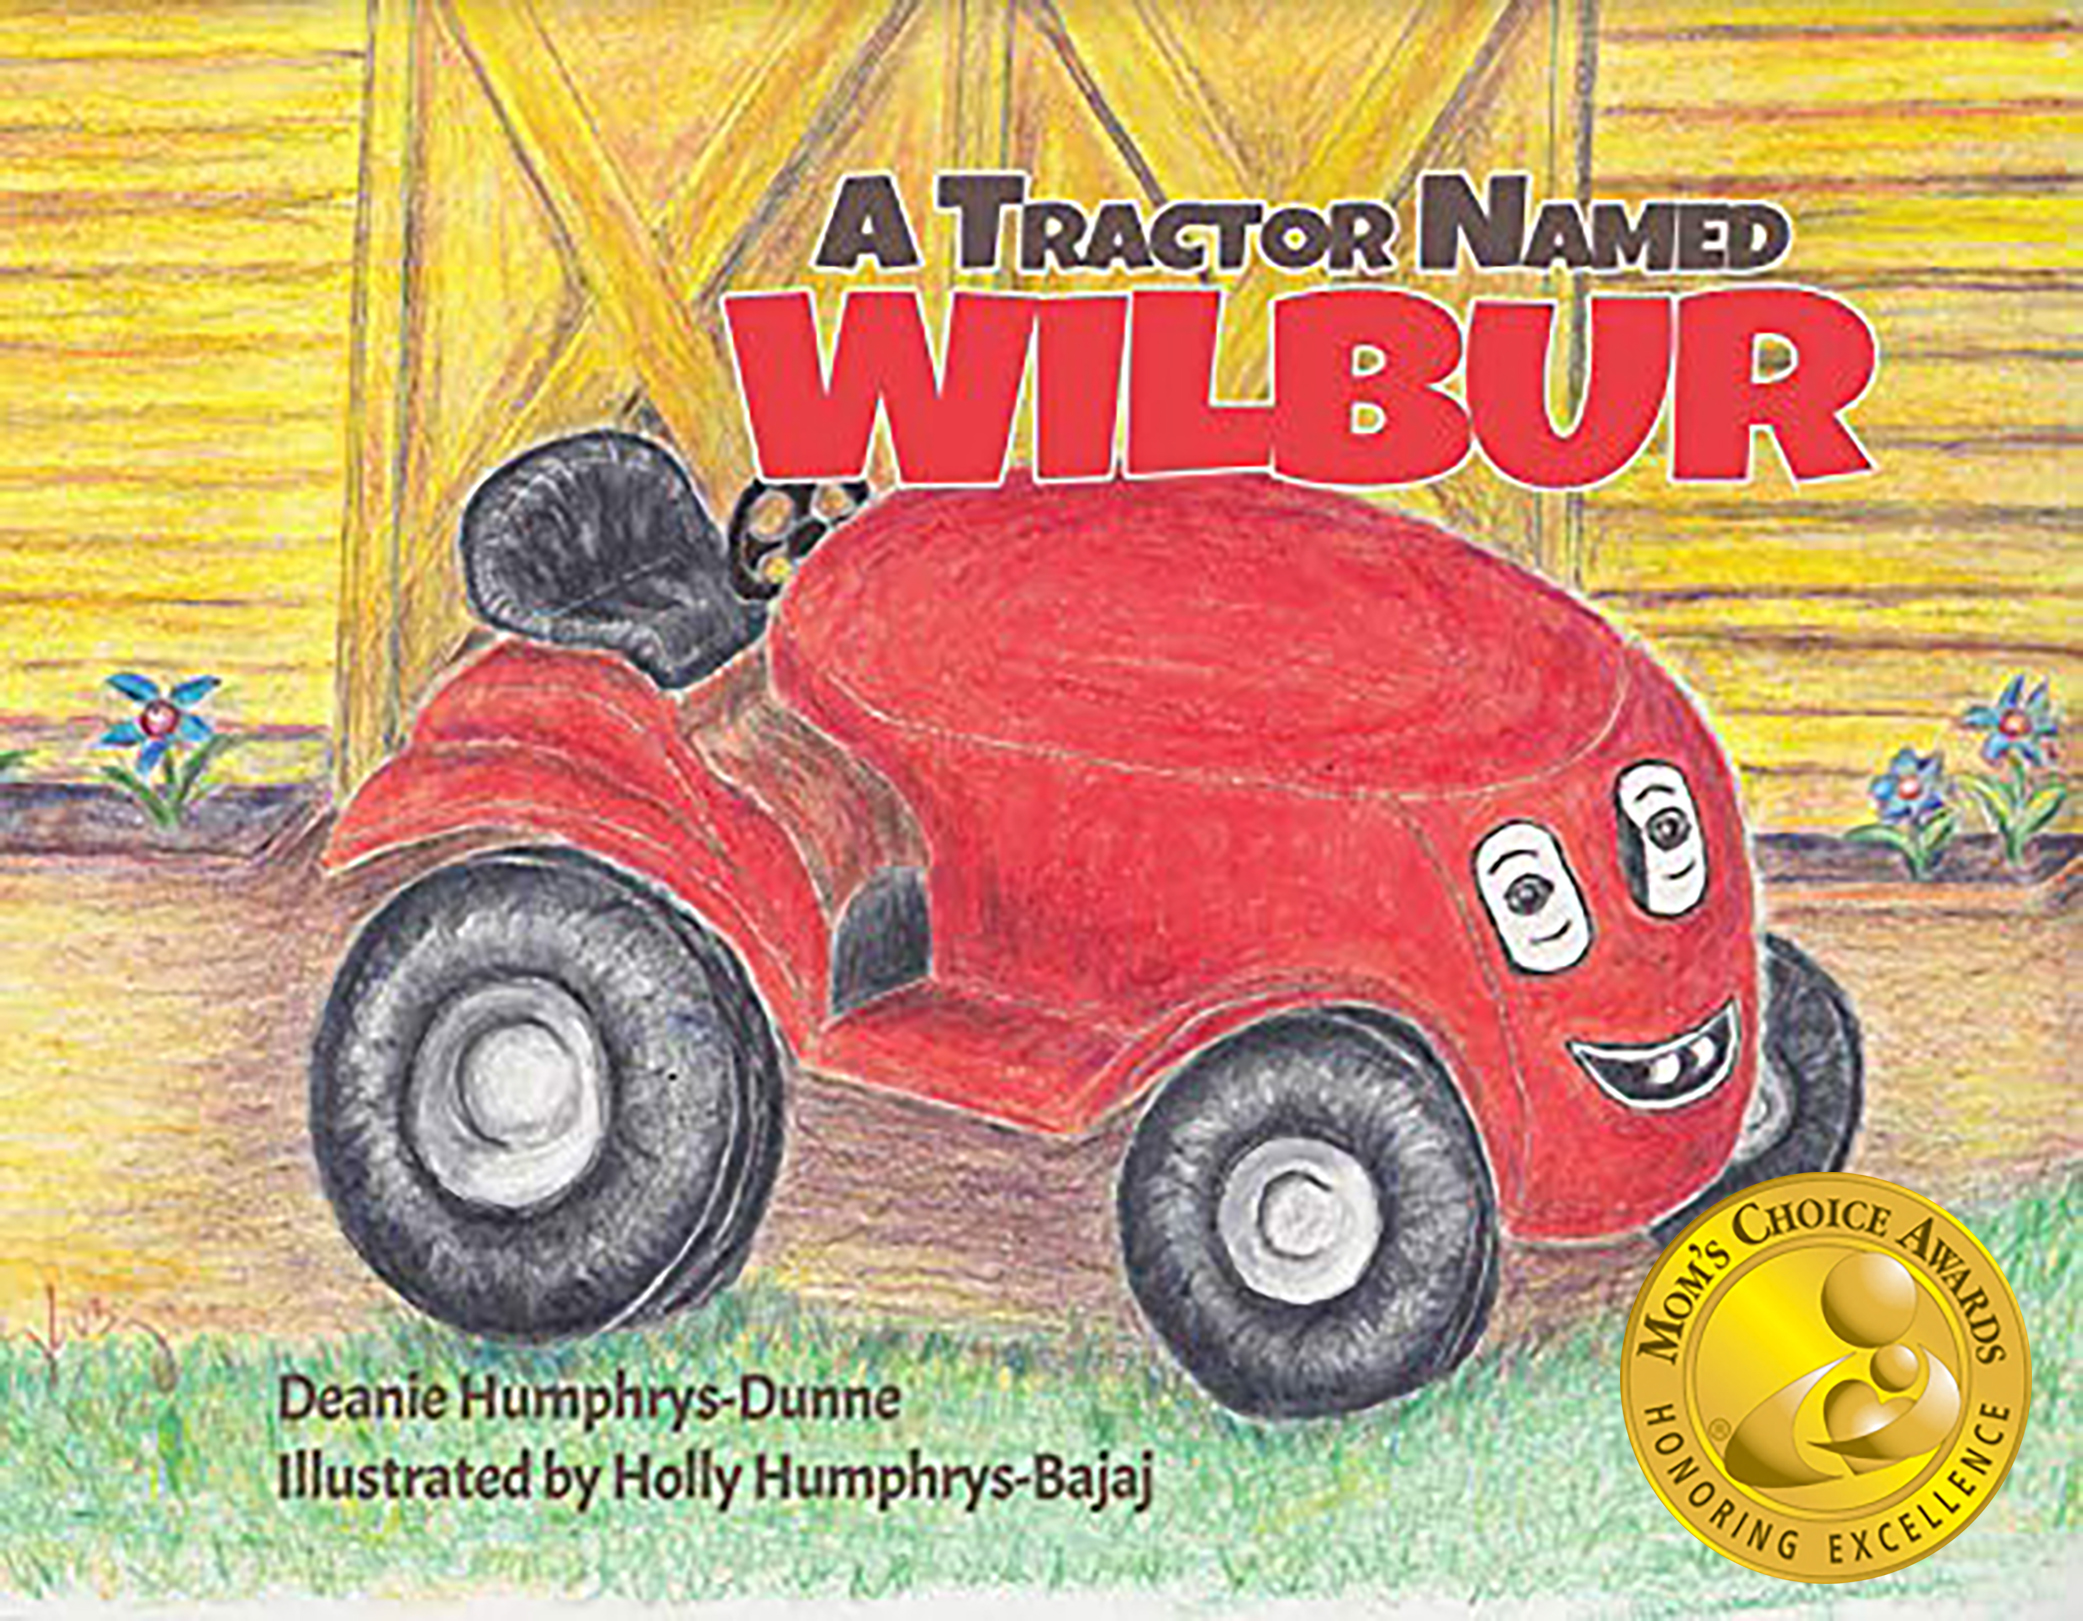 A Tractor Named Wilbur by Deanie Humphrys-Dunne